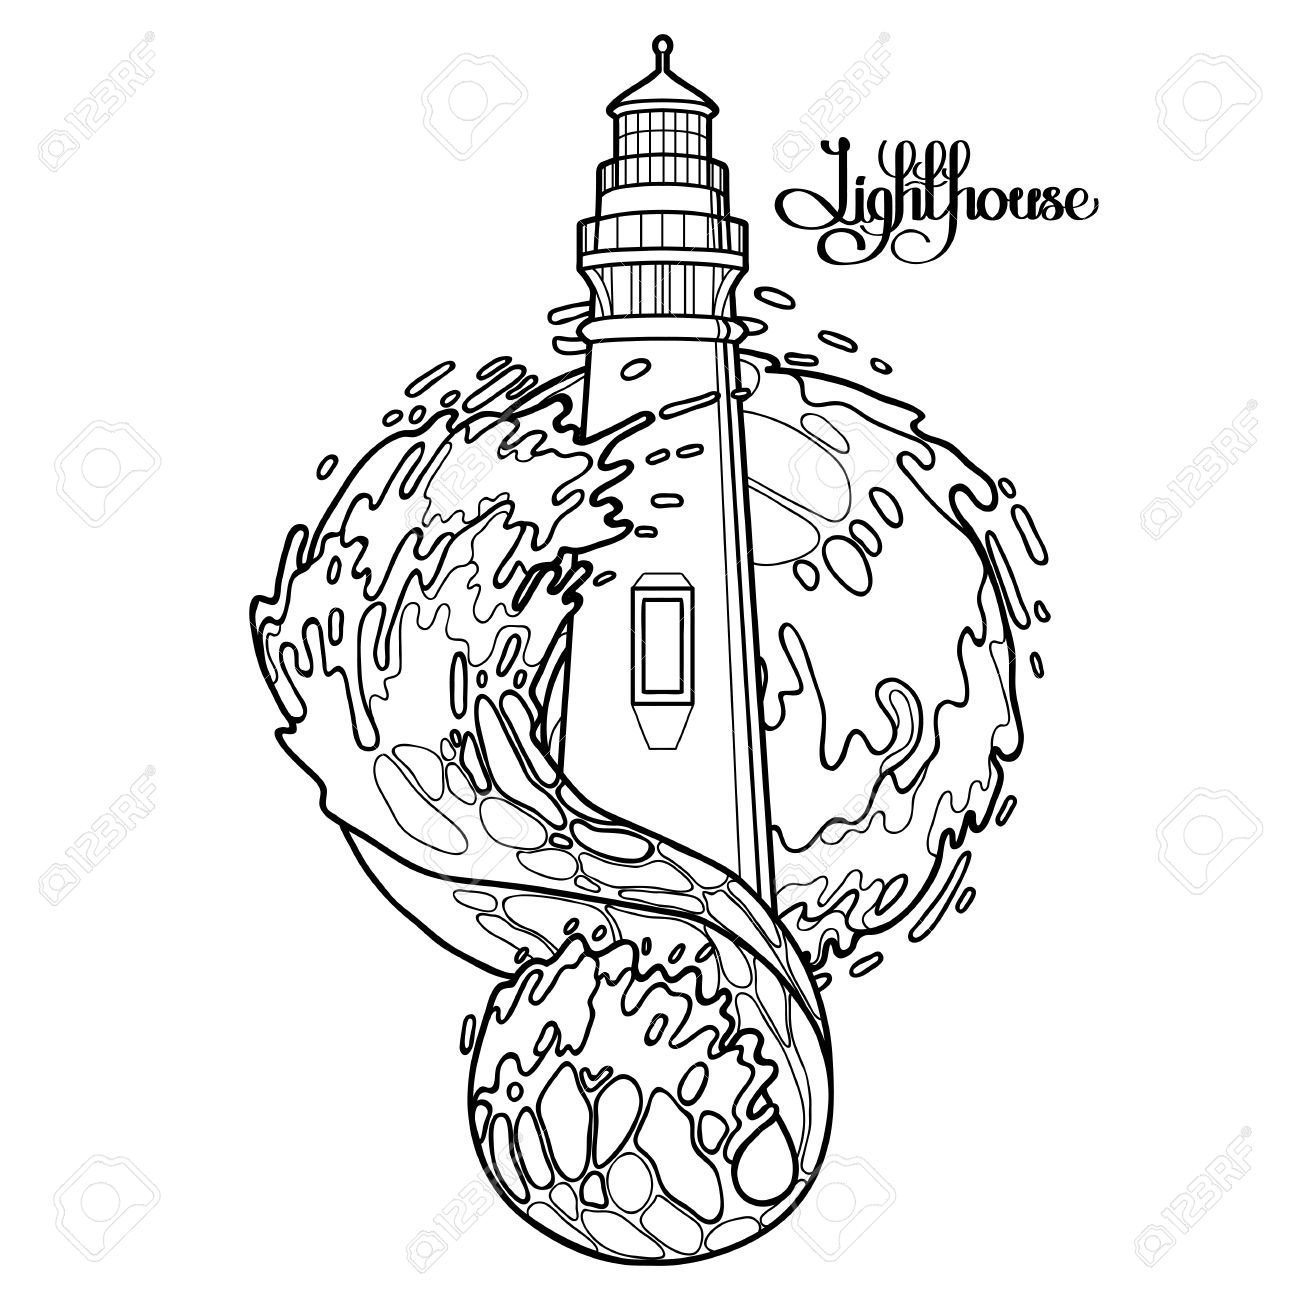 lighthouse among the storm waves graphic vector illustration